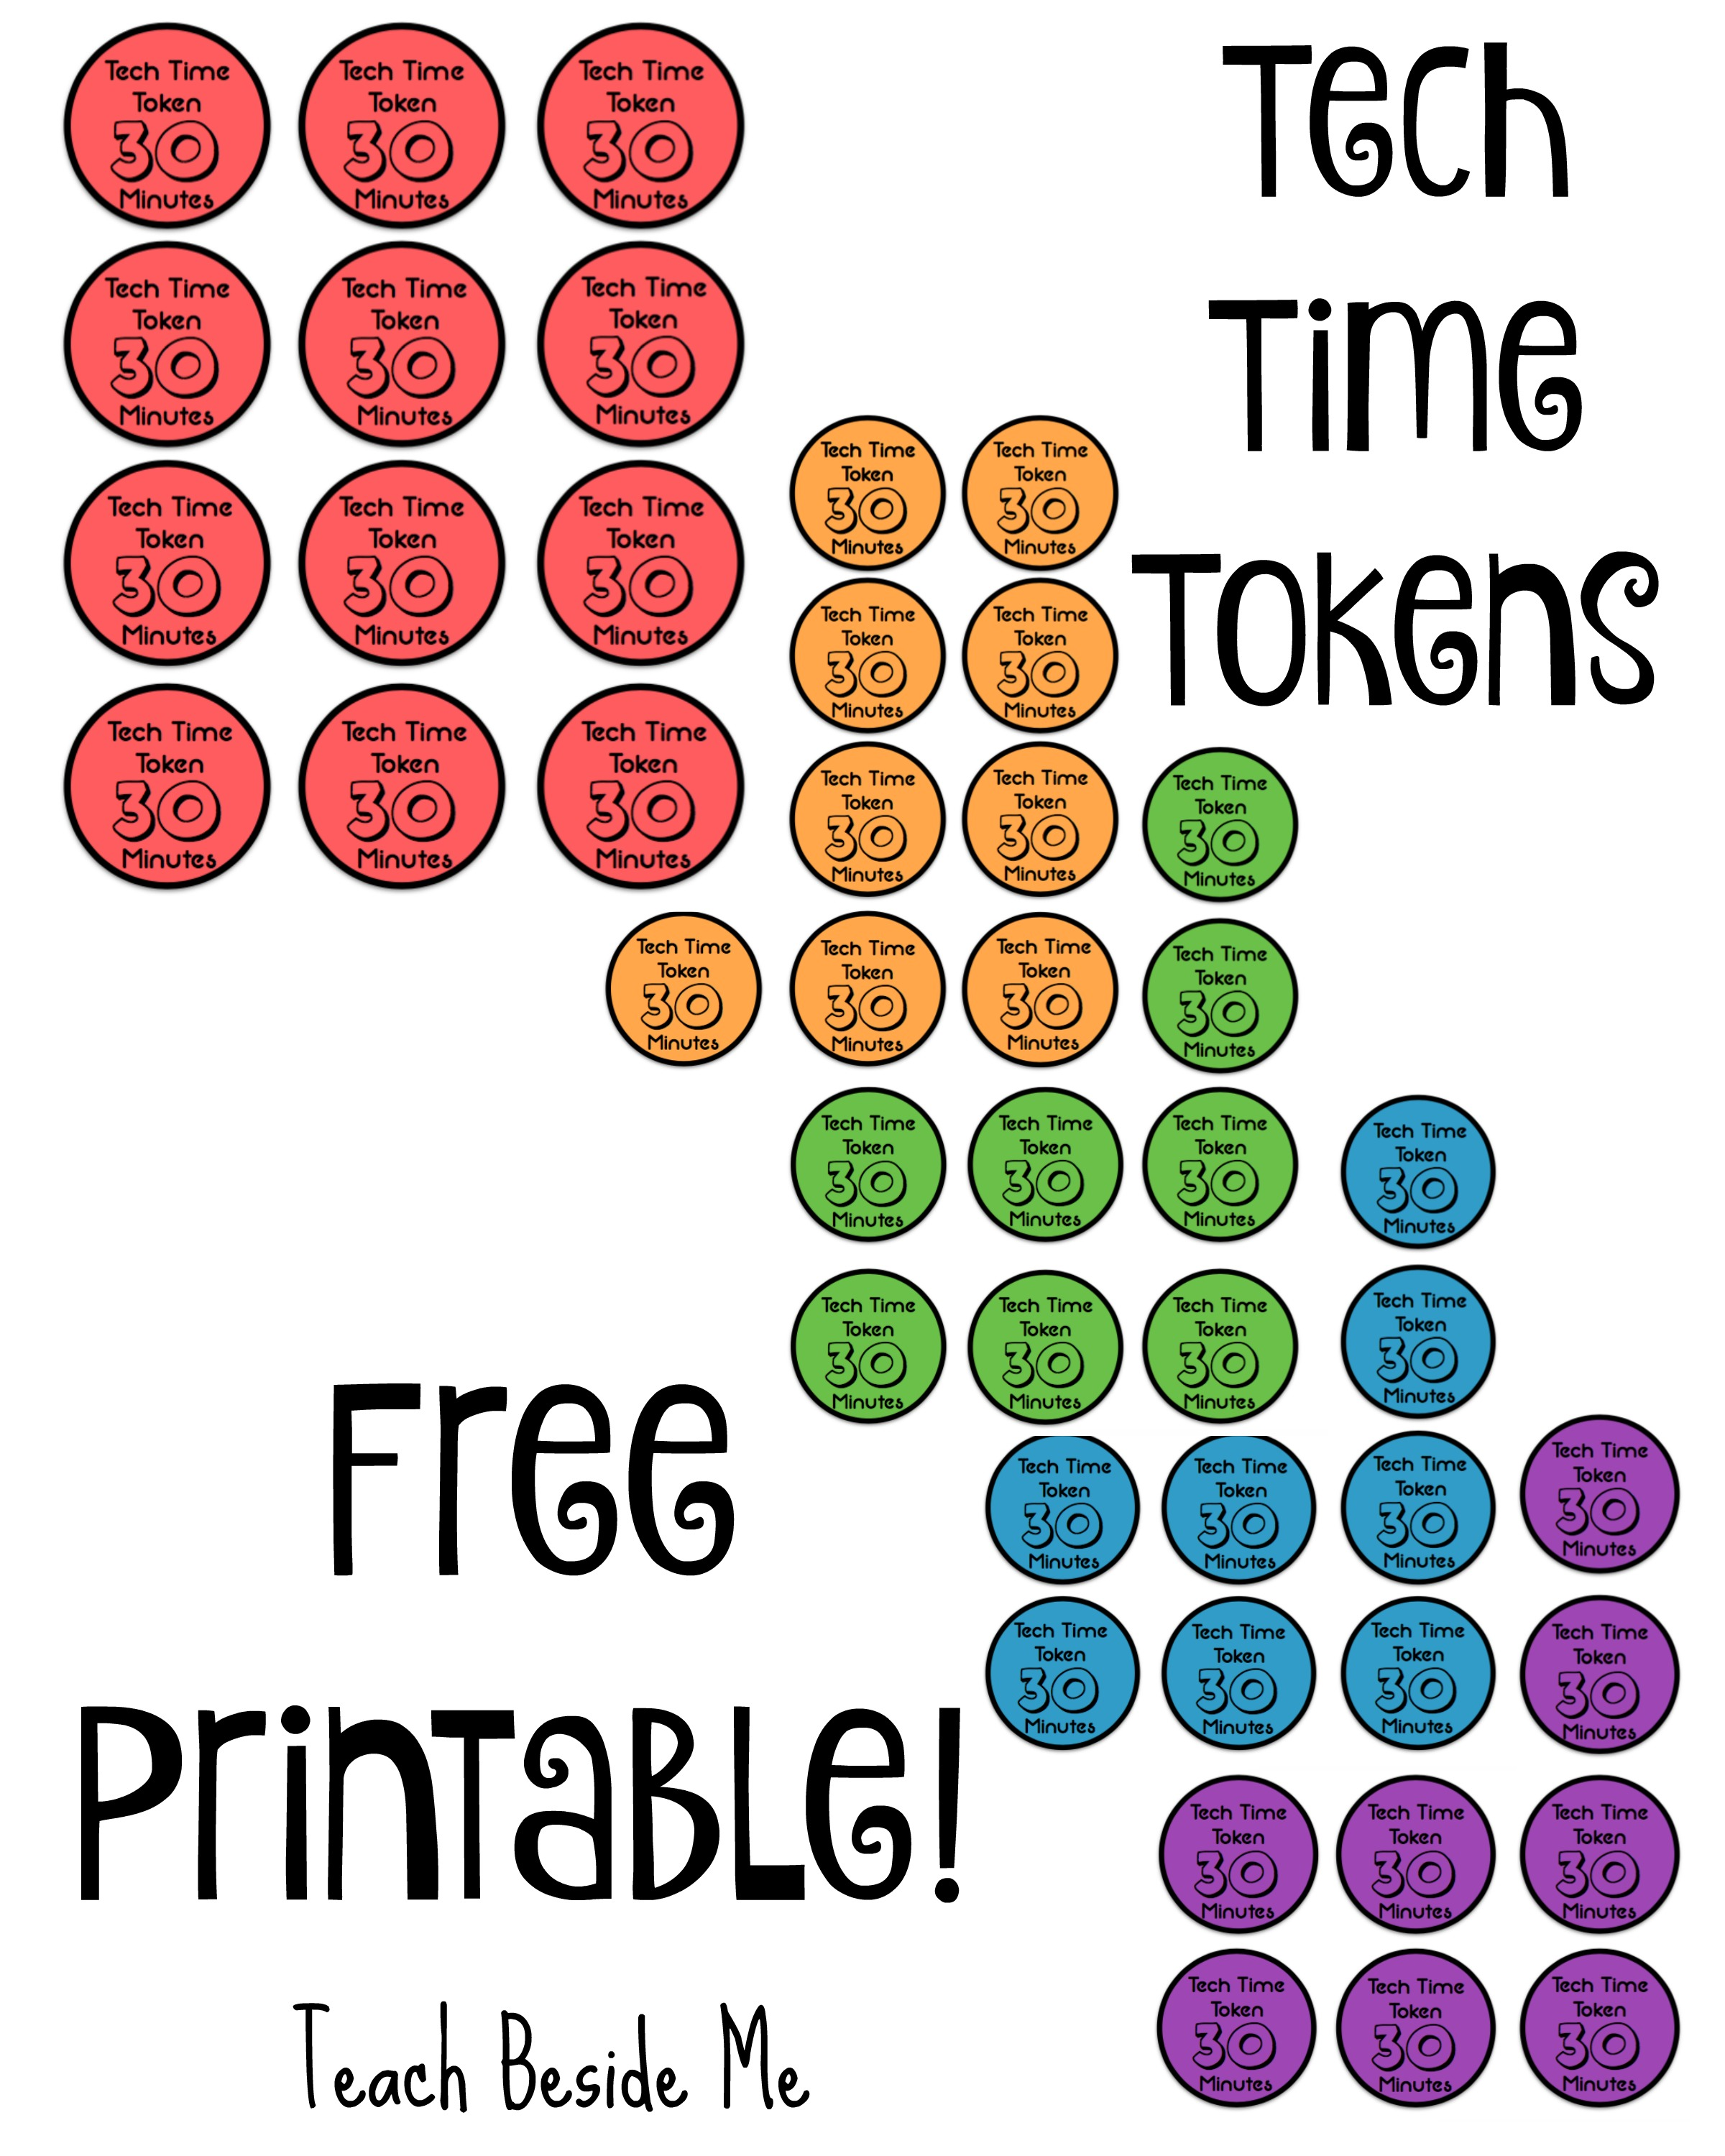 FREE Printable Tech Time Tokens